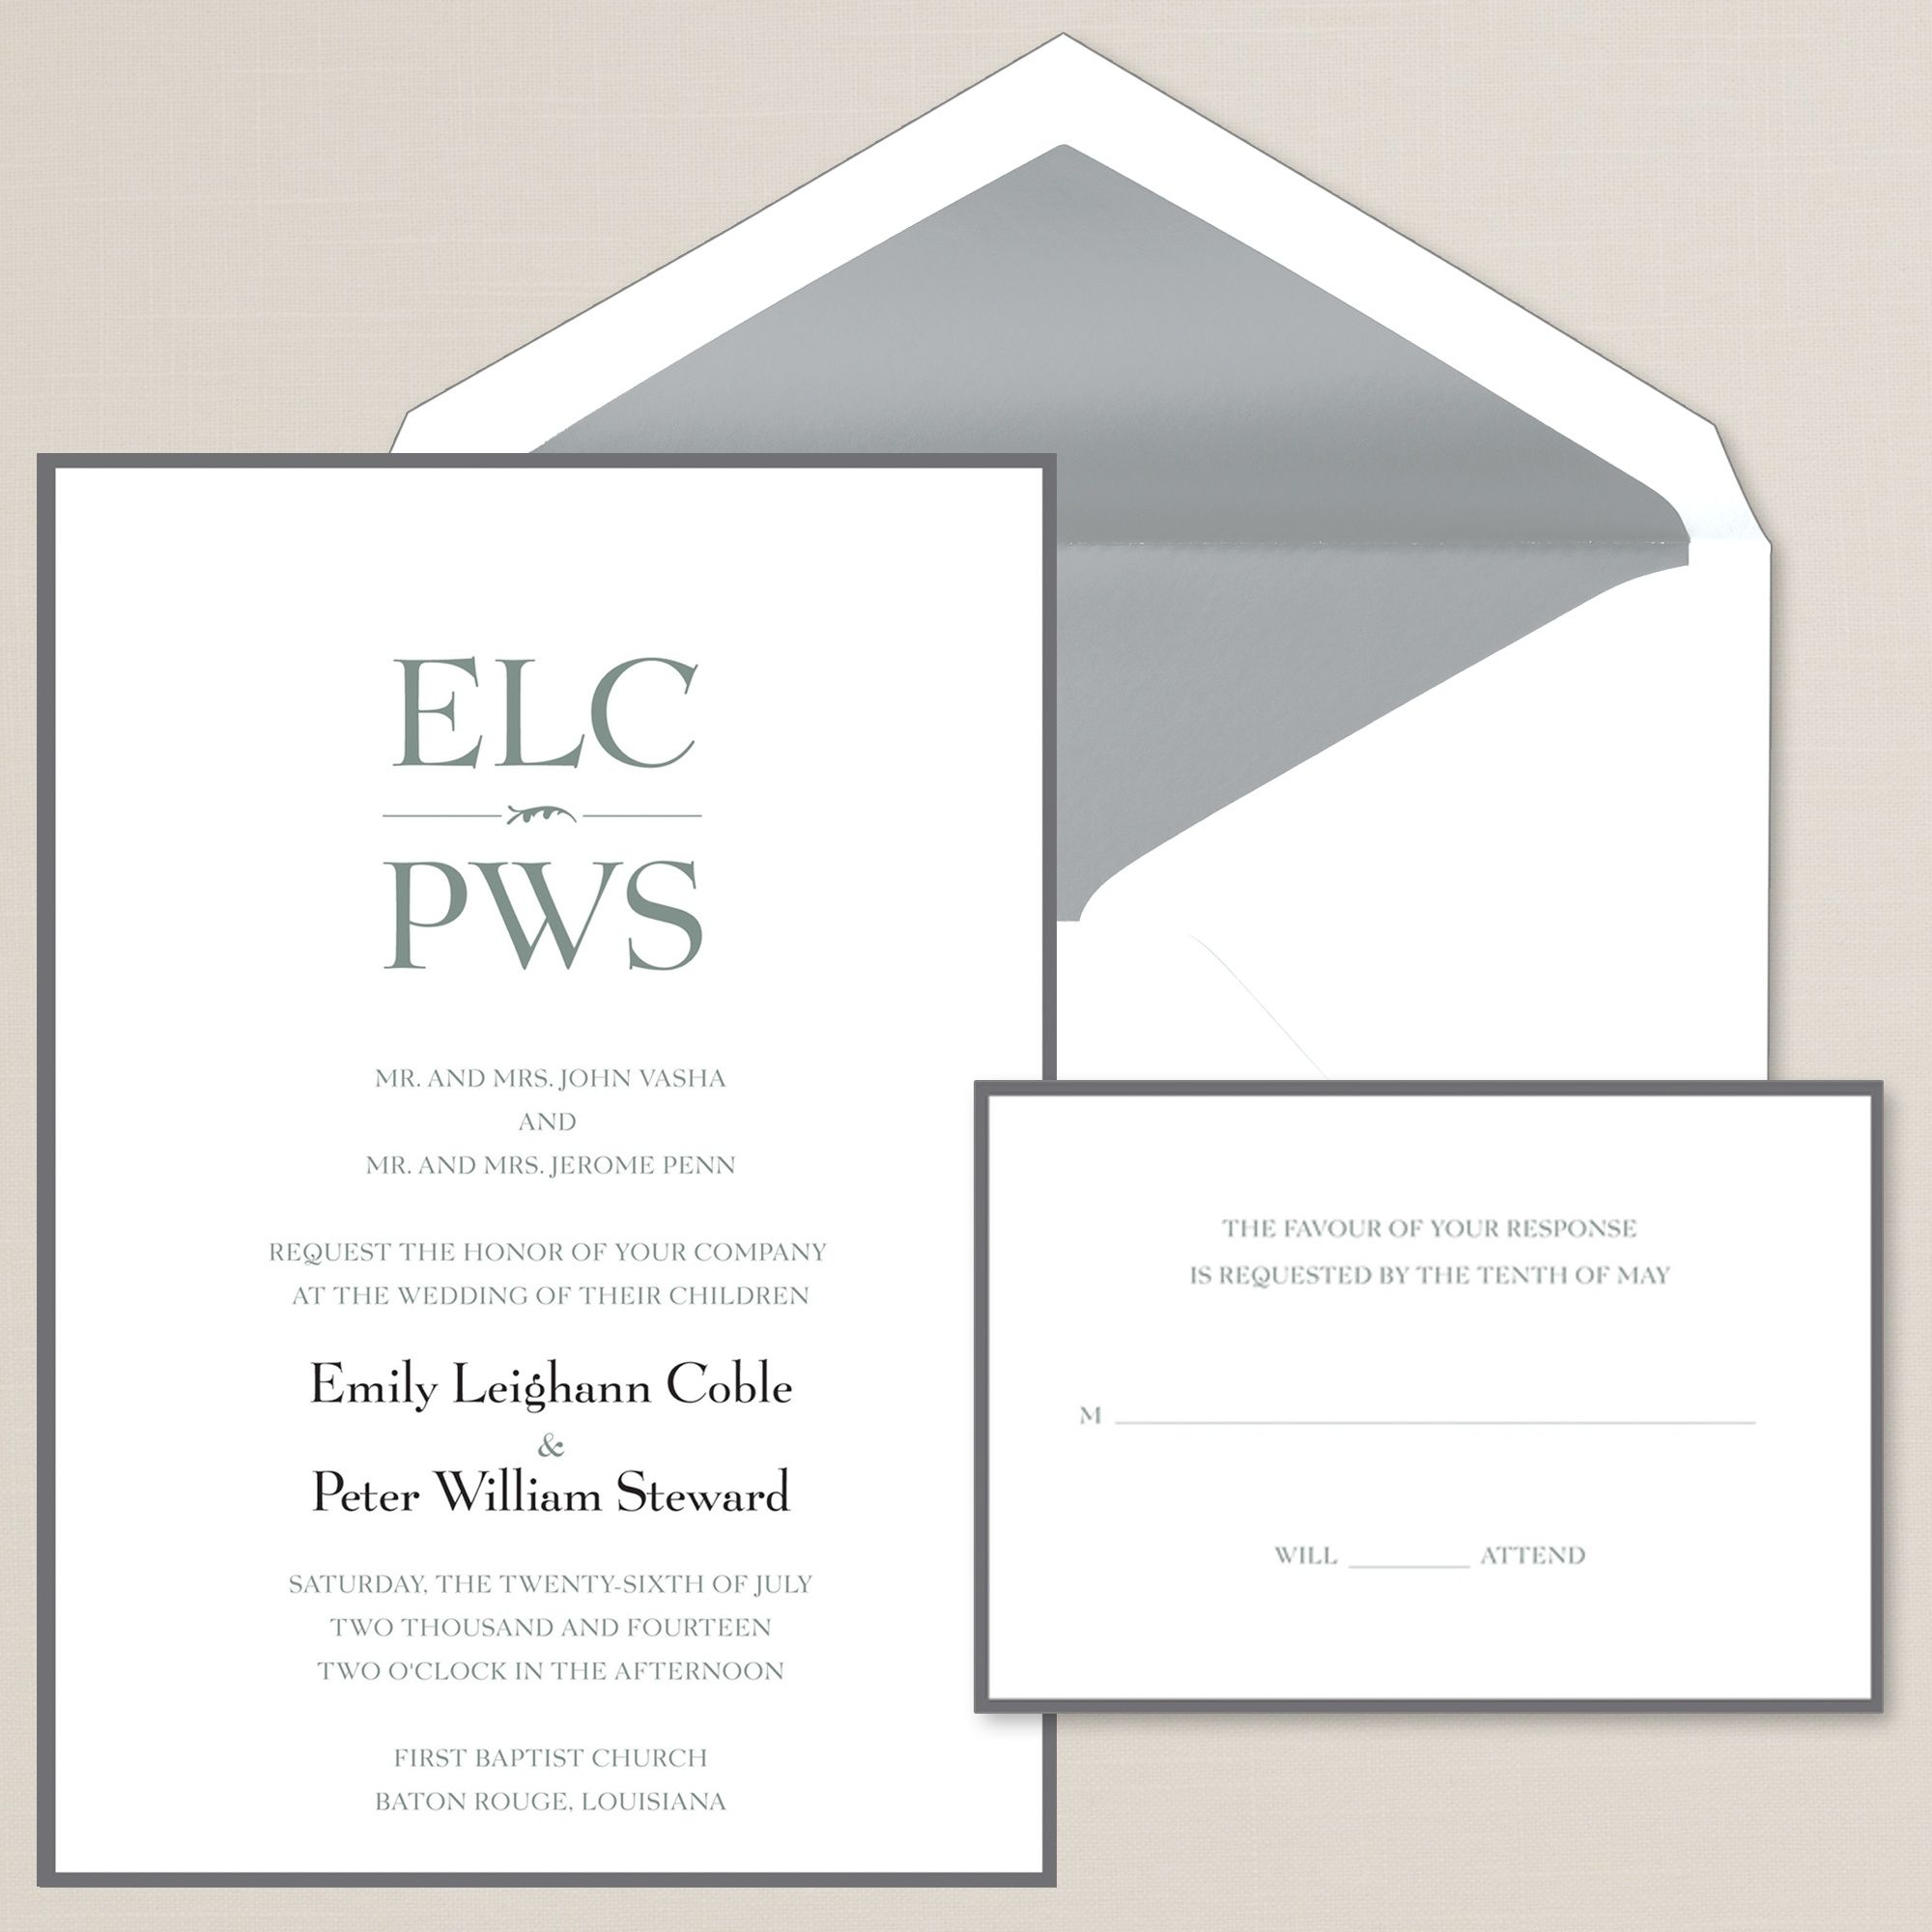 How To Assemble Wedding Invitations Order Wedding Invitations Wedding Invitation Envelopes Wedding Invitations